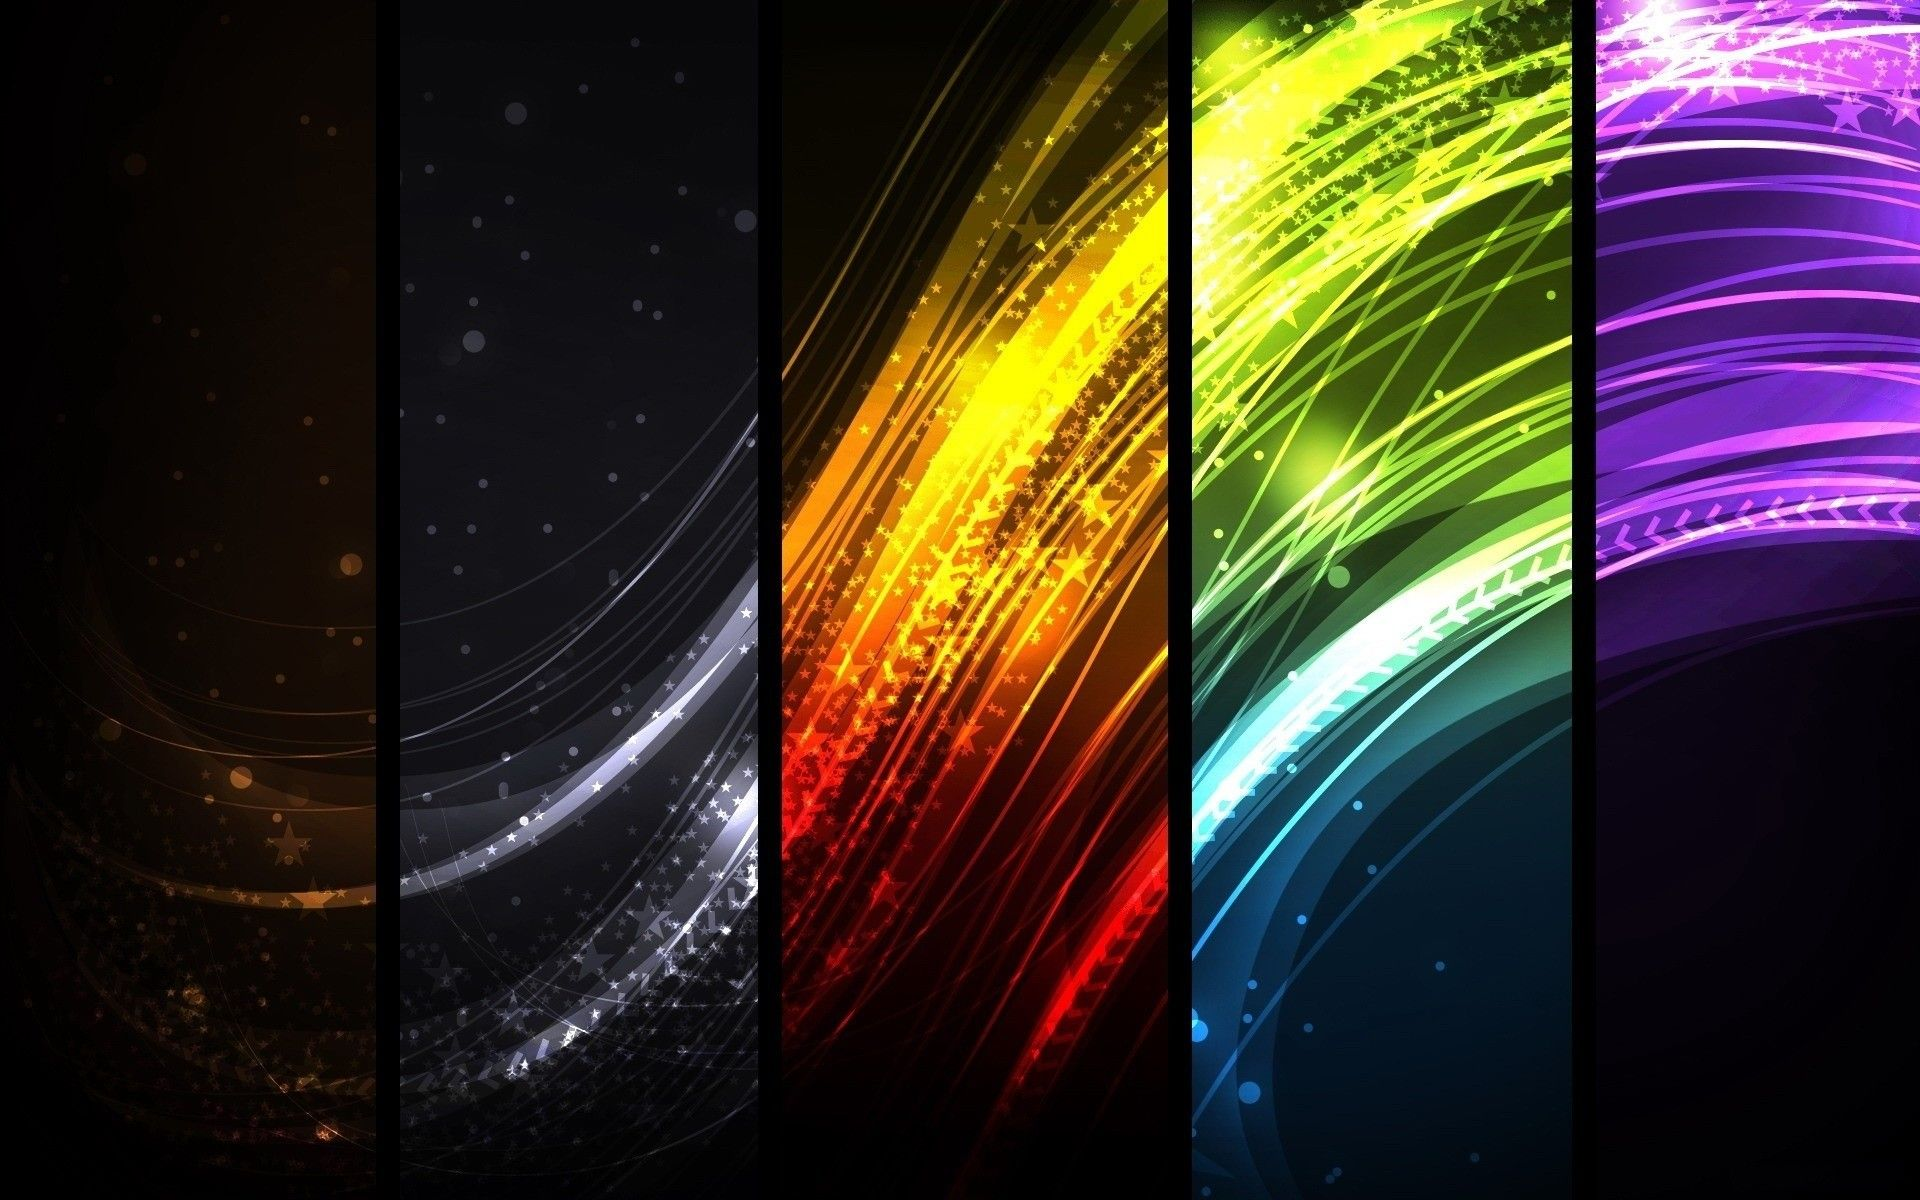 Hd wallpaper colour - Multi Colors Wallpapers Find Best Latest Multi Colors Wallpapers In Hd For Your Pc Desktop